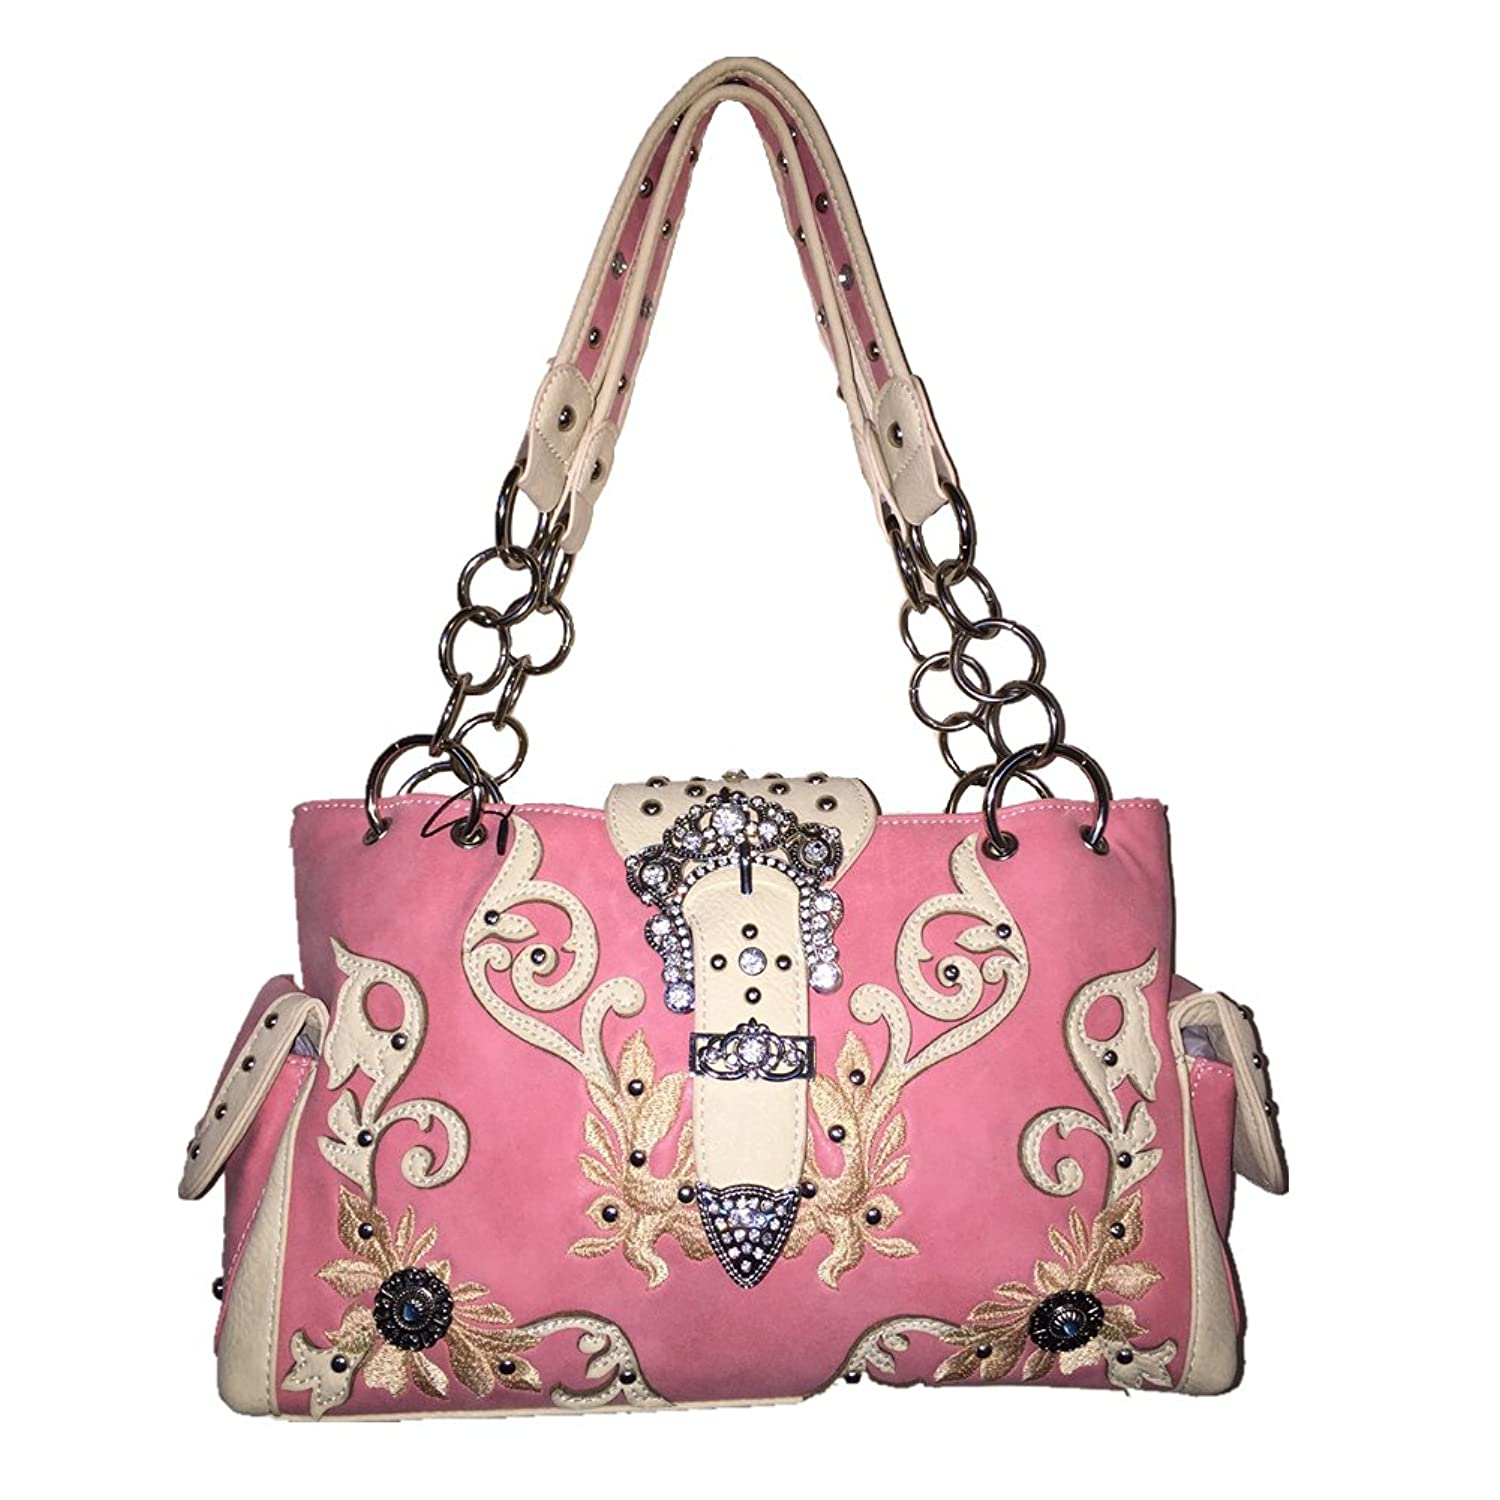 Western Rhinestone Cross Buckle Style Handbag Purse with Magnetic Closure and Matching Wallet 5238 in Pink